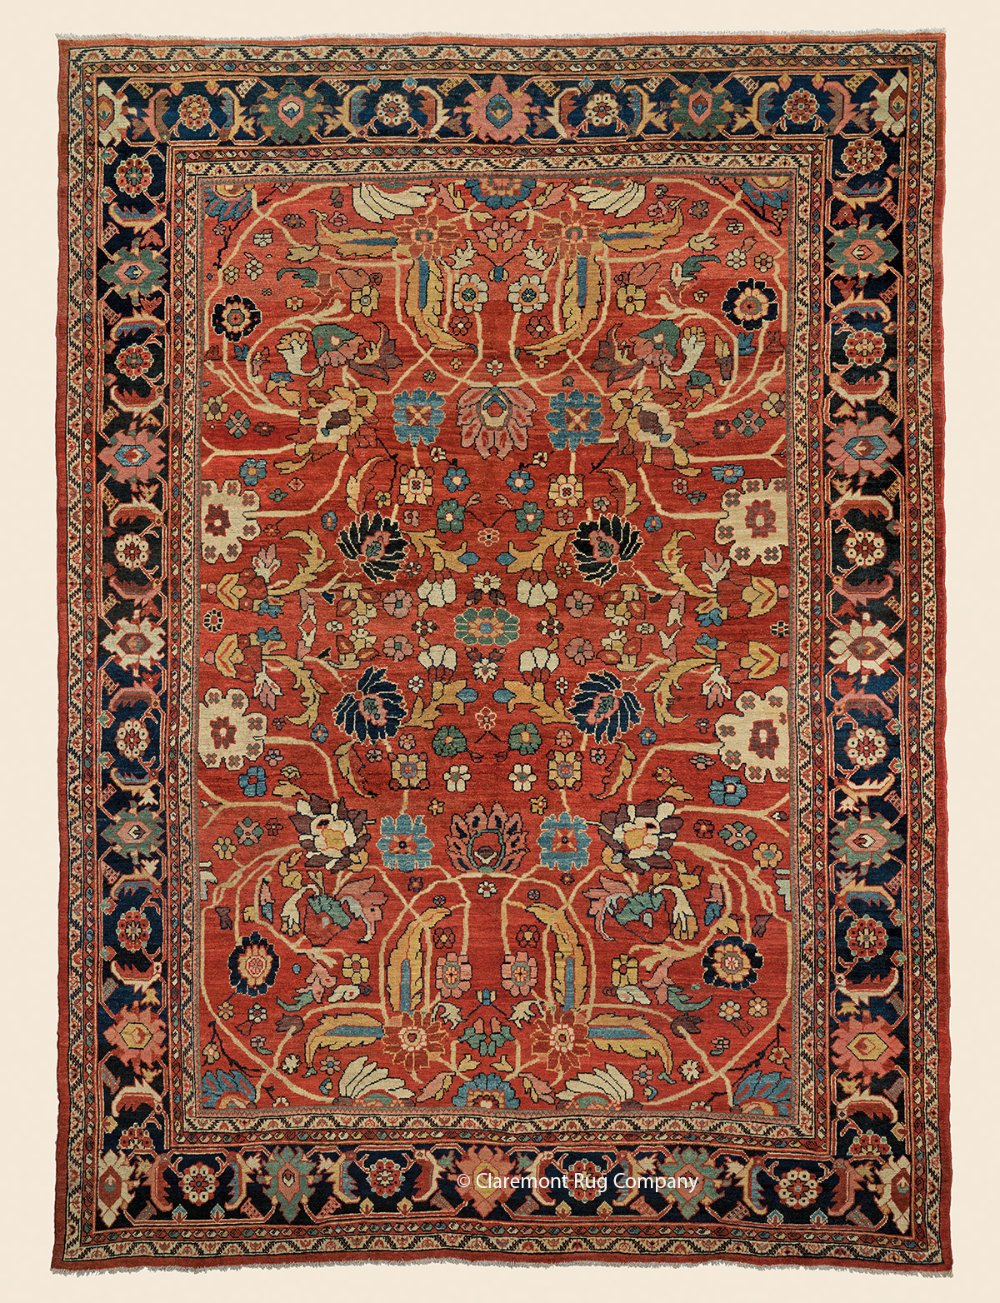 Antique West Central Persian Sultanabad Rug 9ft X 12ft In 2020 Sultanabad Rug Rugs Antique Rugs